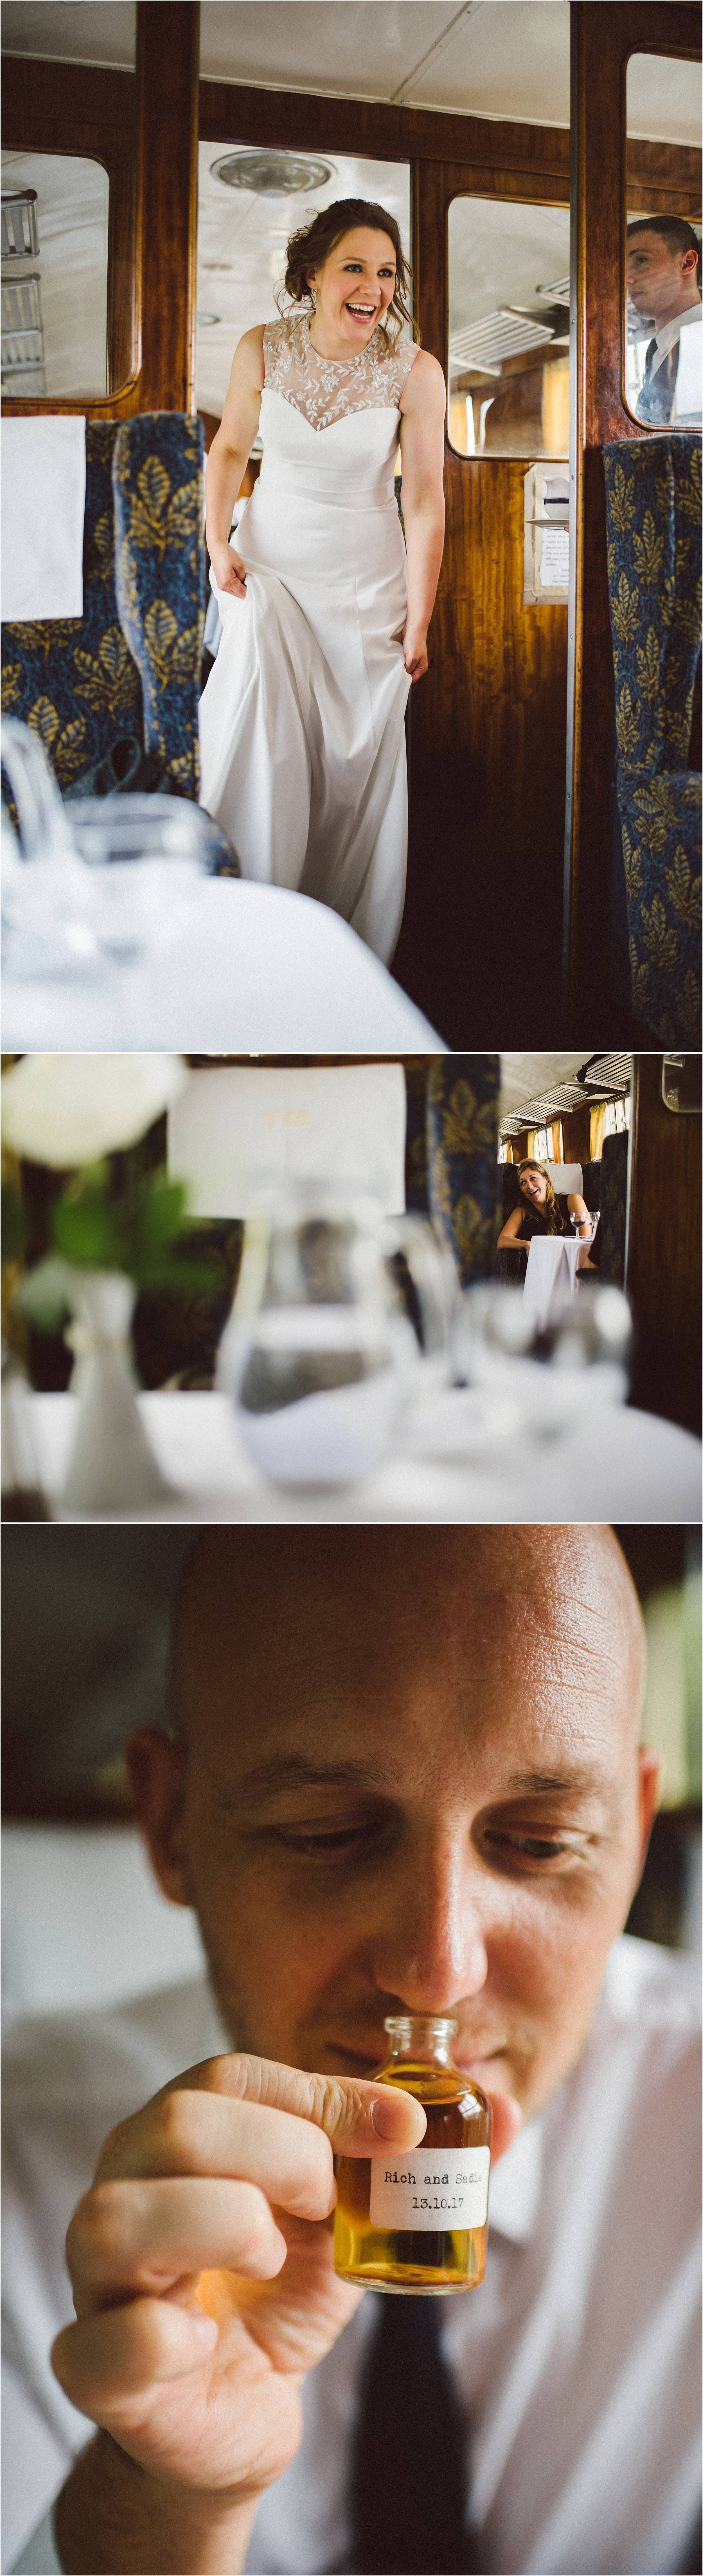 The Great Central Railway Wedding Photography_0112.jpg